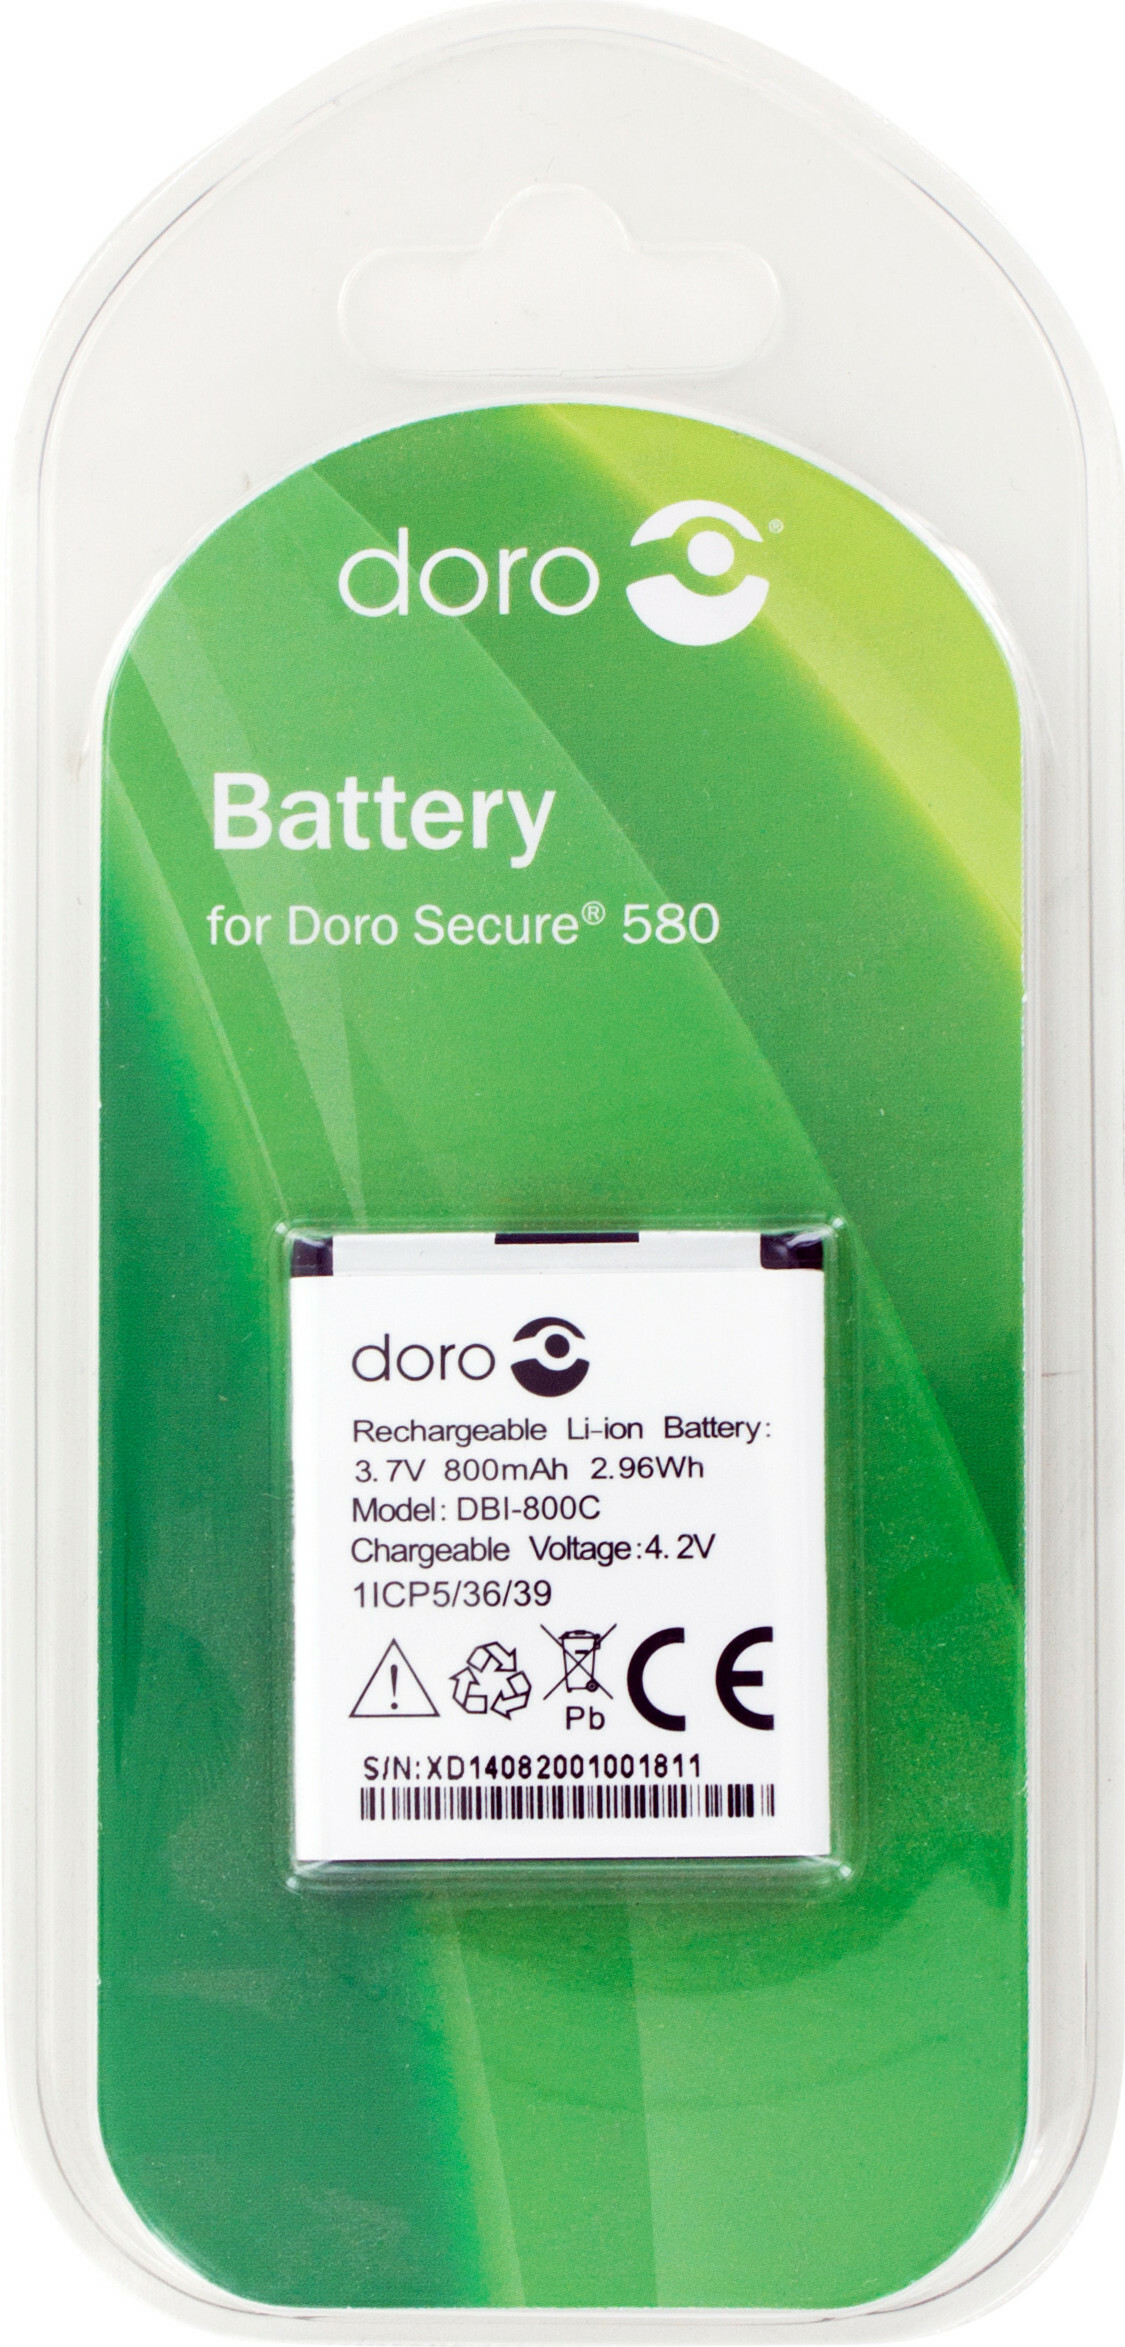 Doro Secure 580 (IUP) Battery